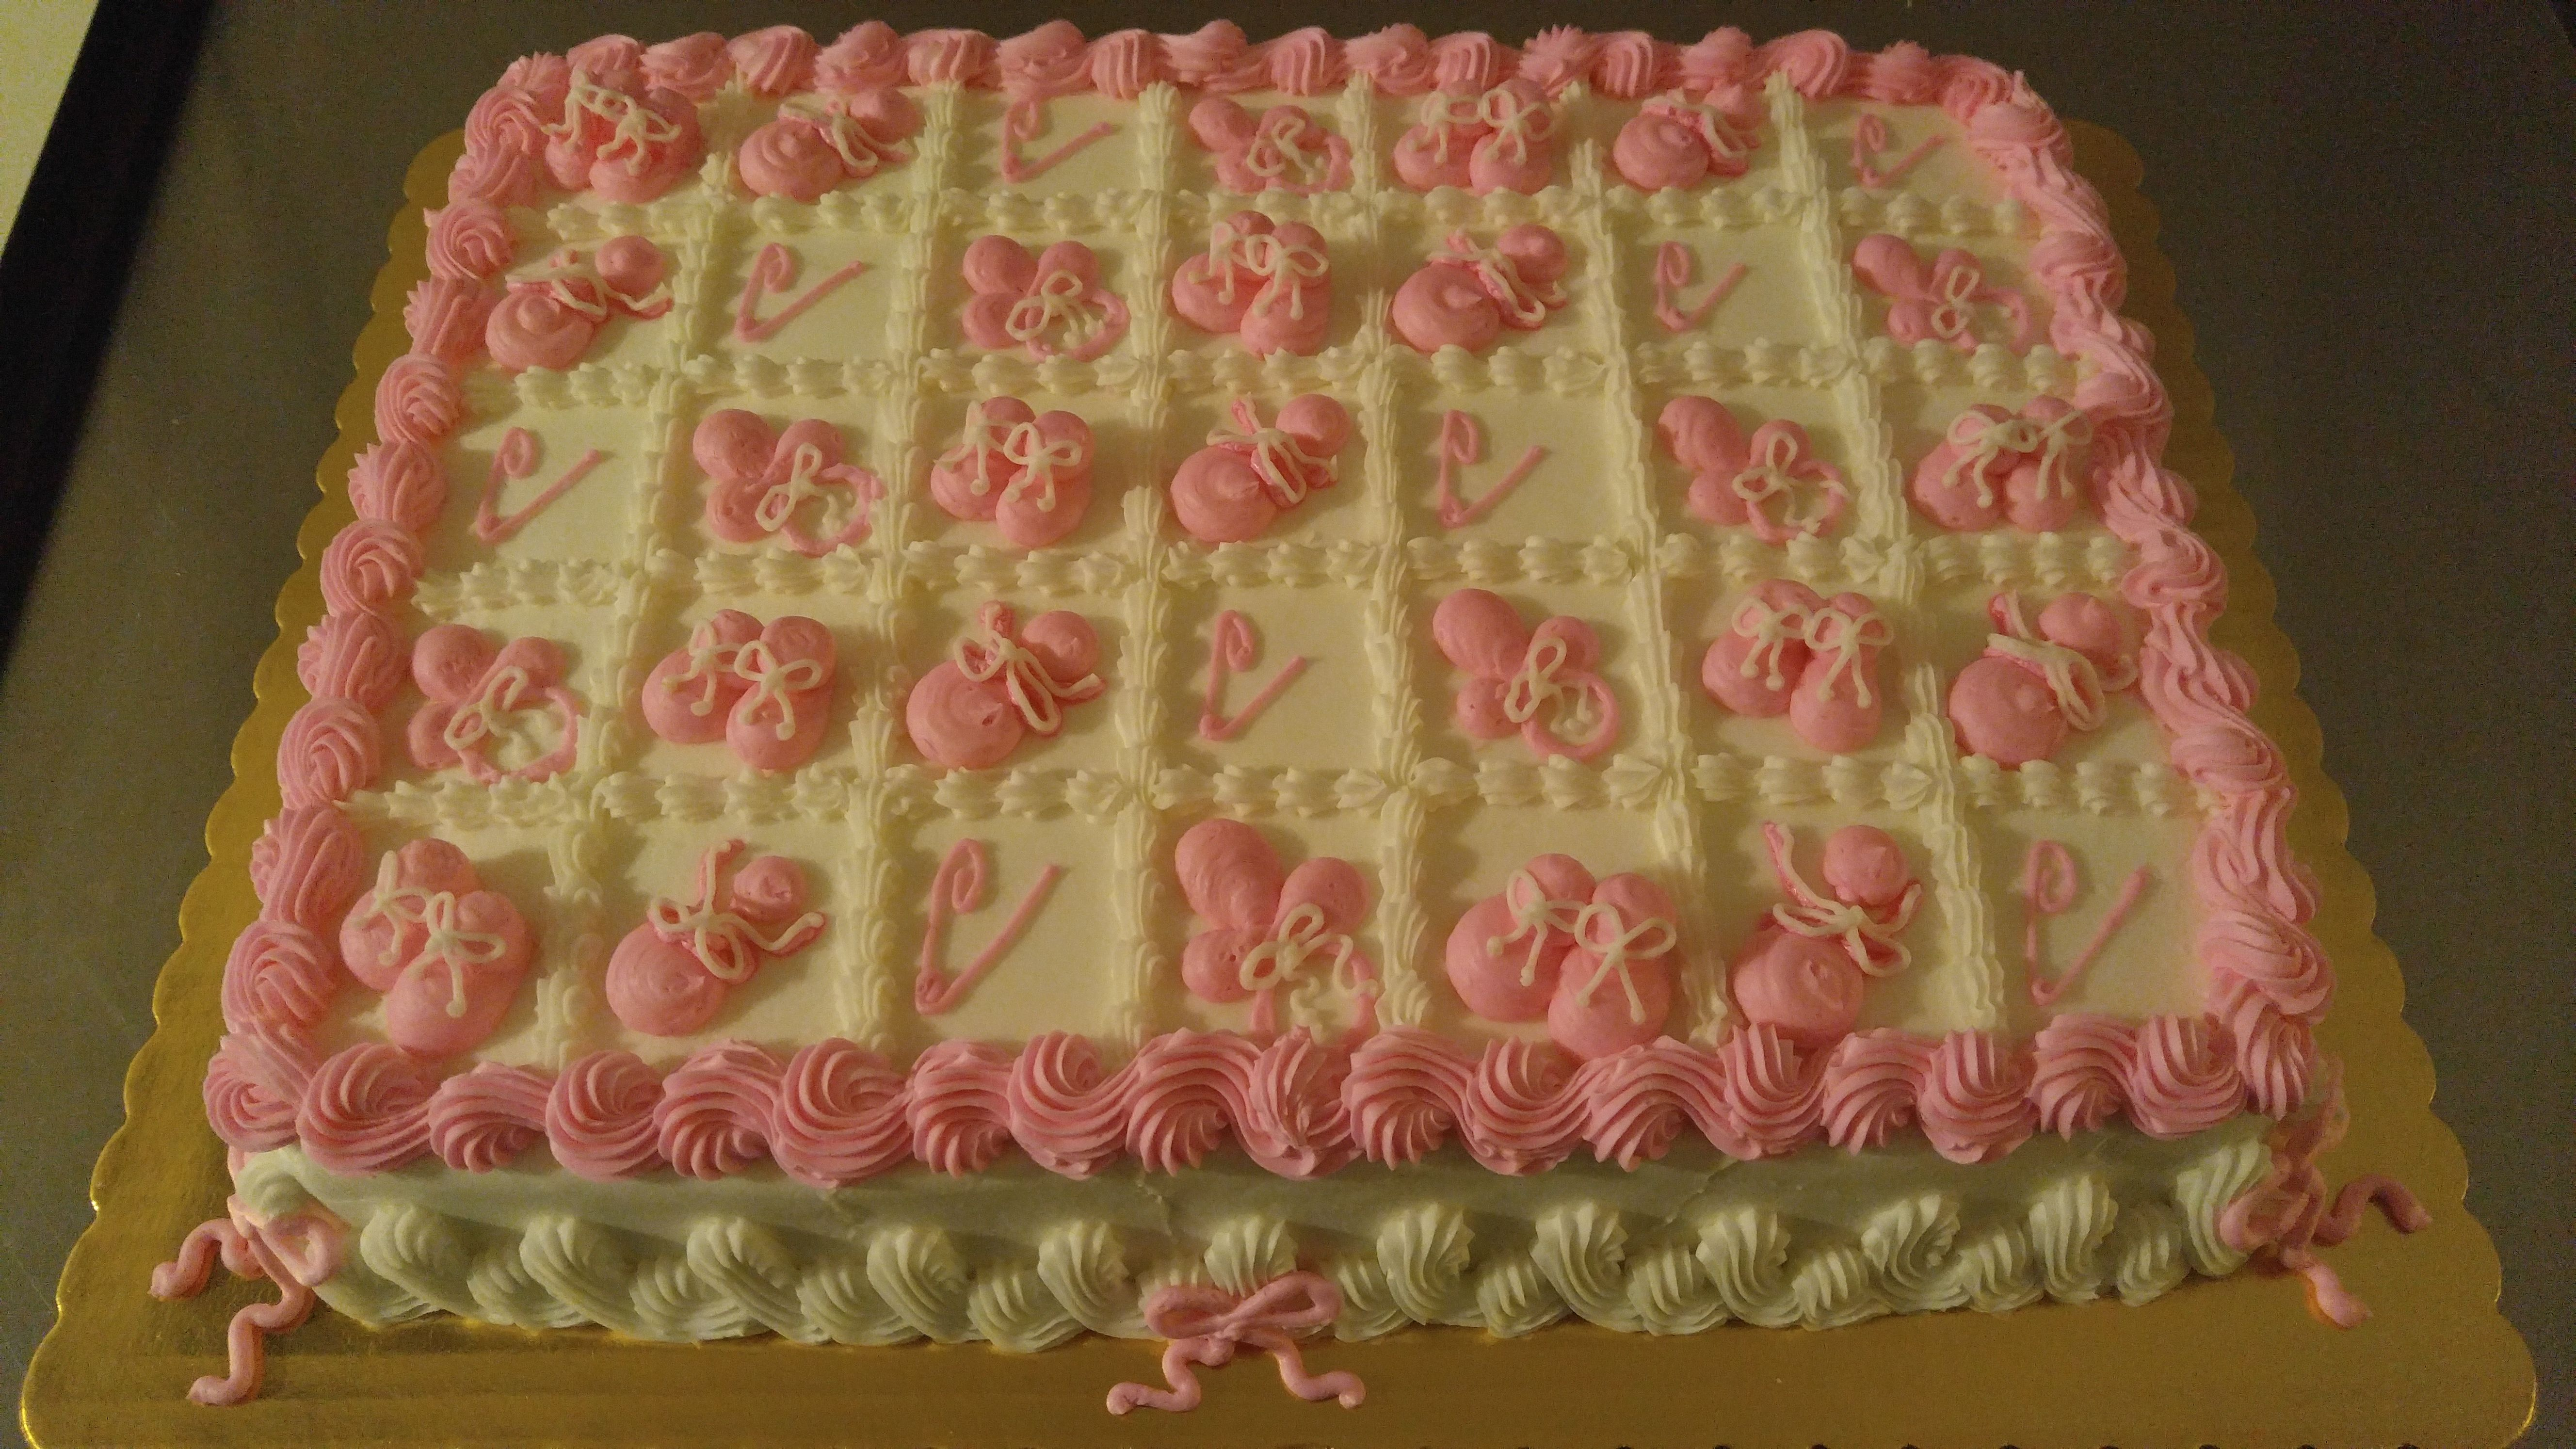 Baby Shower Sheet Cake Decorated in Squares, Uncut. www.VintageBakery.com (803) 386-8806